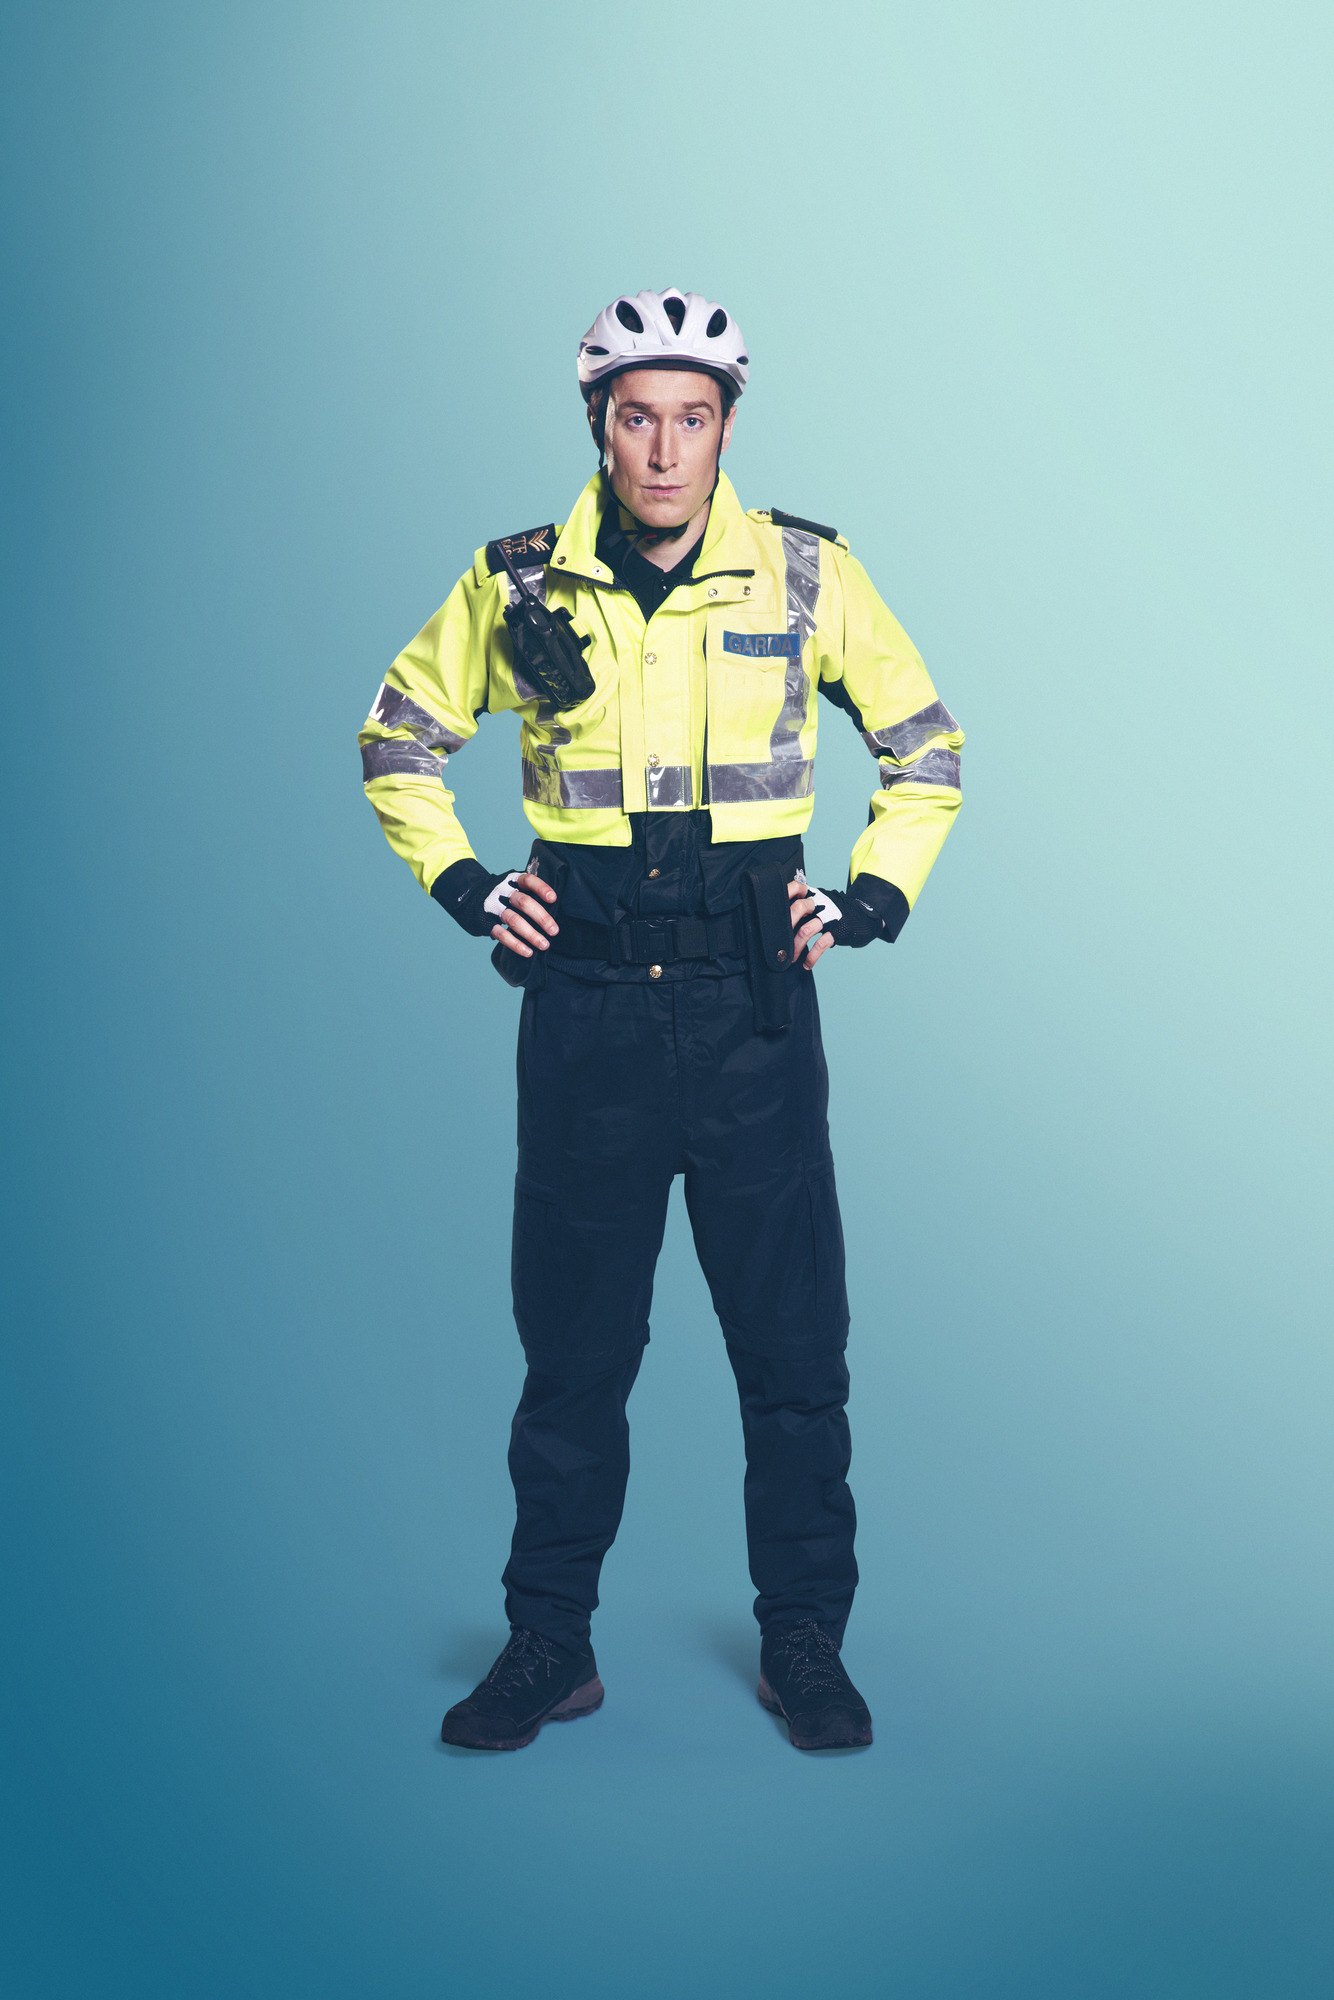 Dominic MacHale is Sergeant Tony Healy